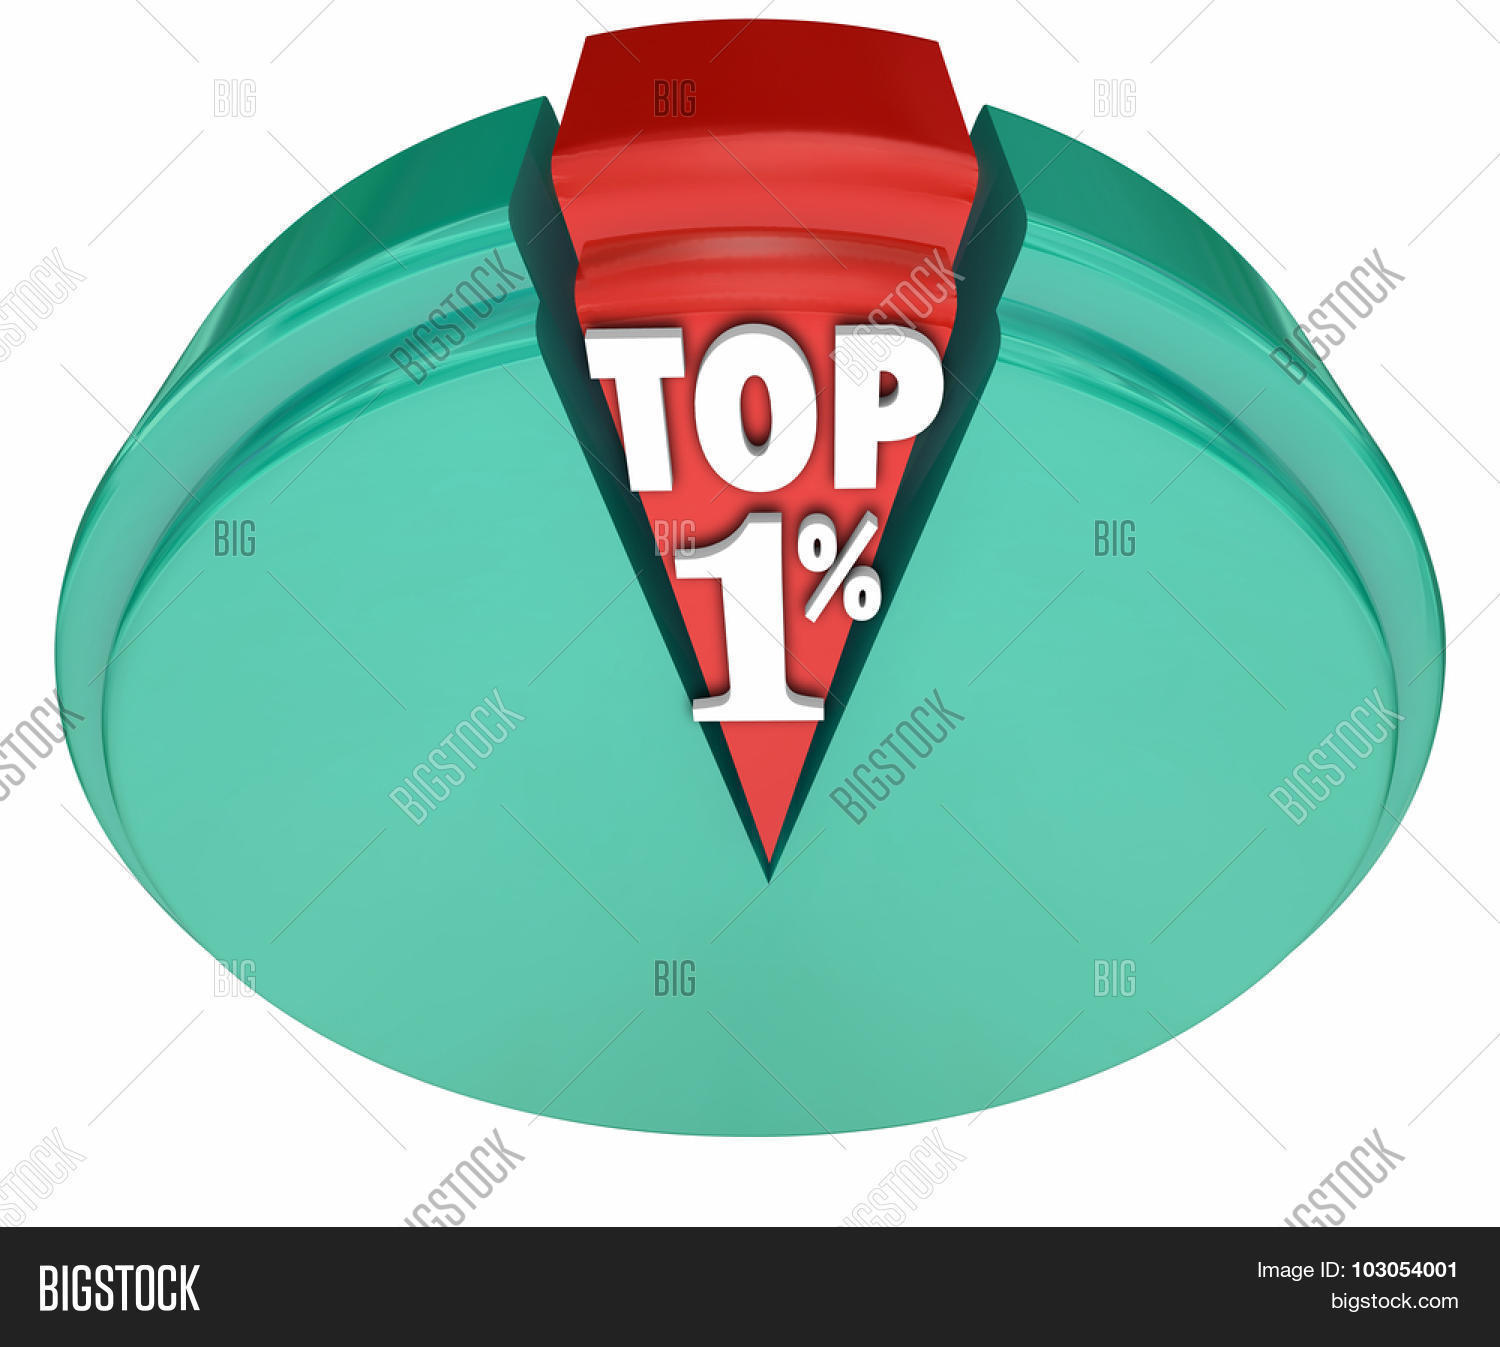 Top 1 percent words on pie chart image photo bigstock top 1 percent words on a pie chart to illustrate the upper class wealthy nvjuhfo Image collections